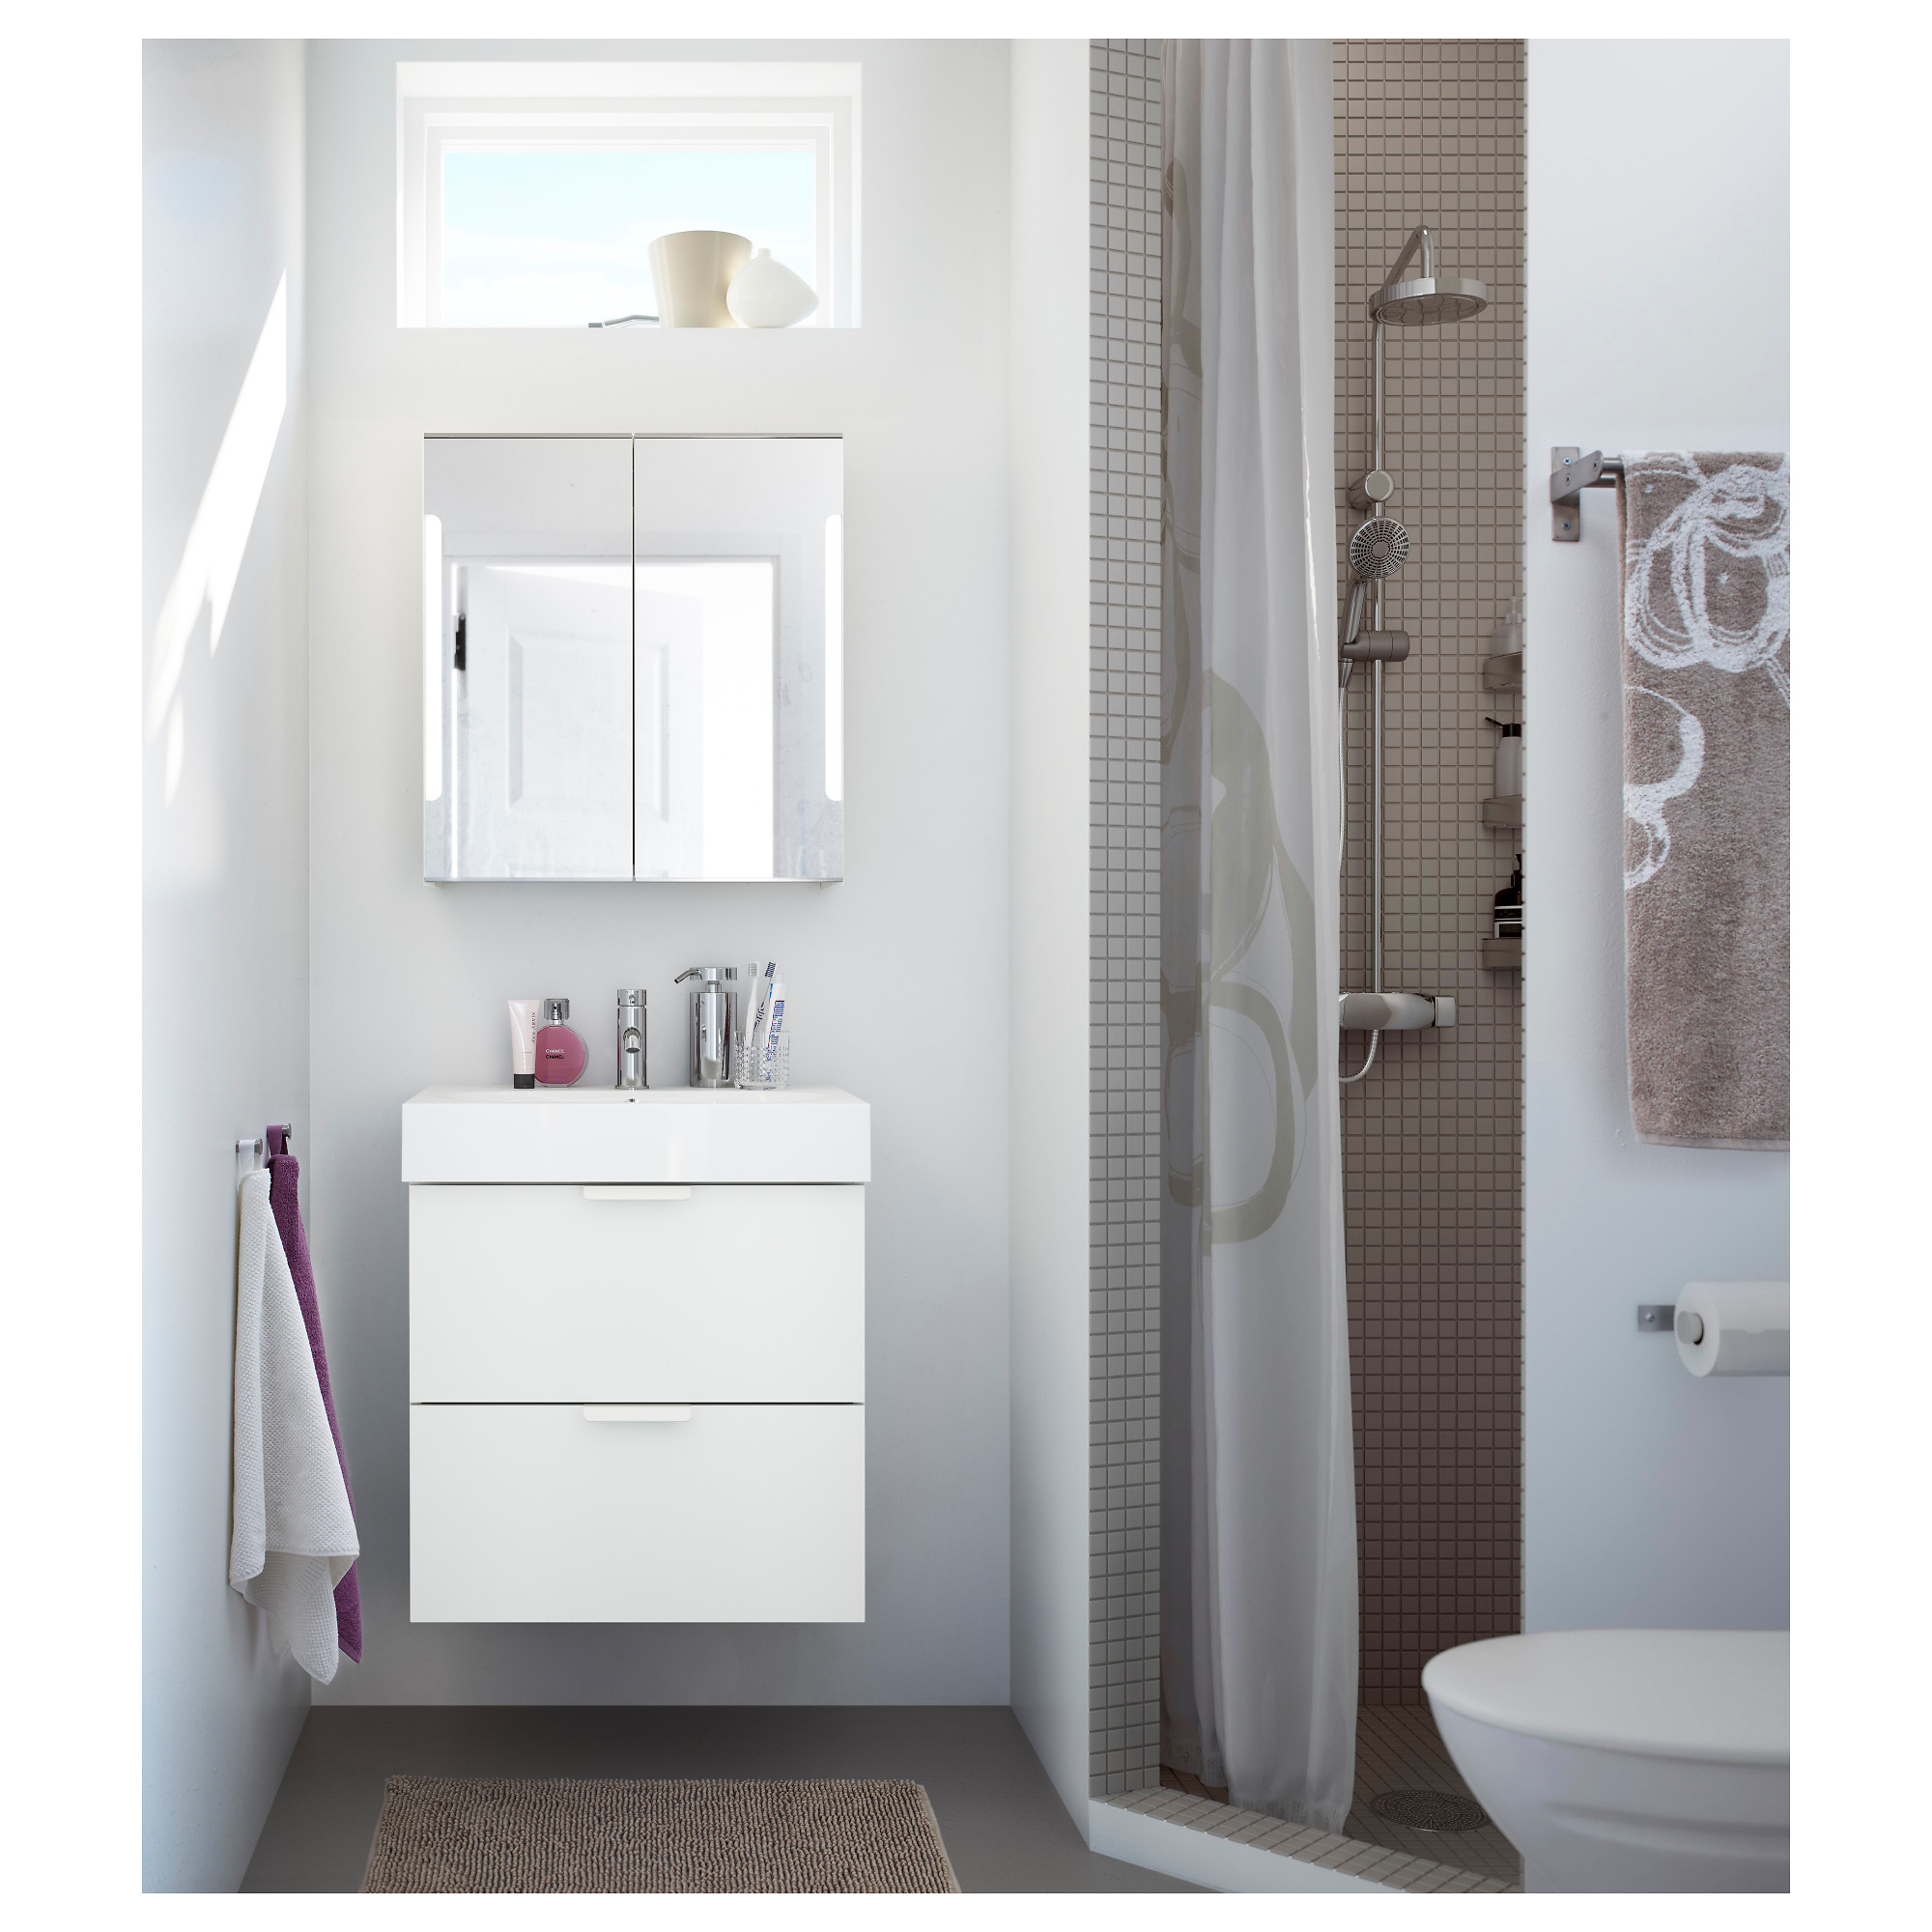 Bathroom mirror cabinets ikea - Storjorm Mirror Cabinet W 2 Doors Light 23 5 8x5 1 2x37 3 4 Ikea